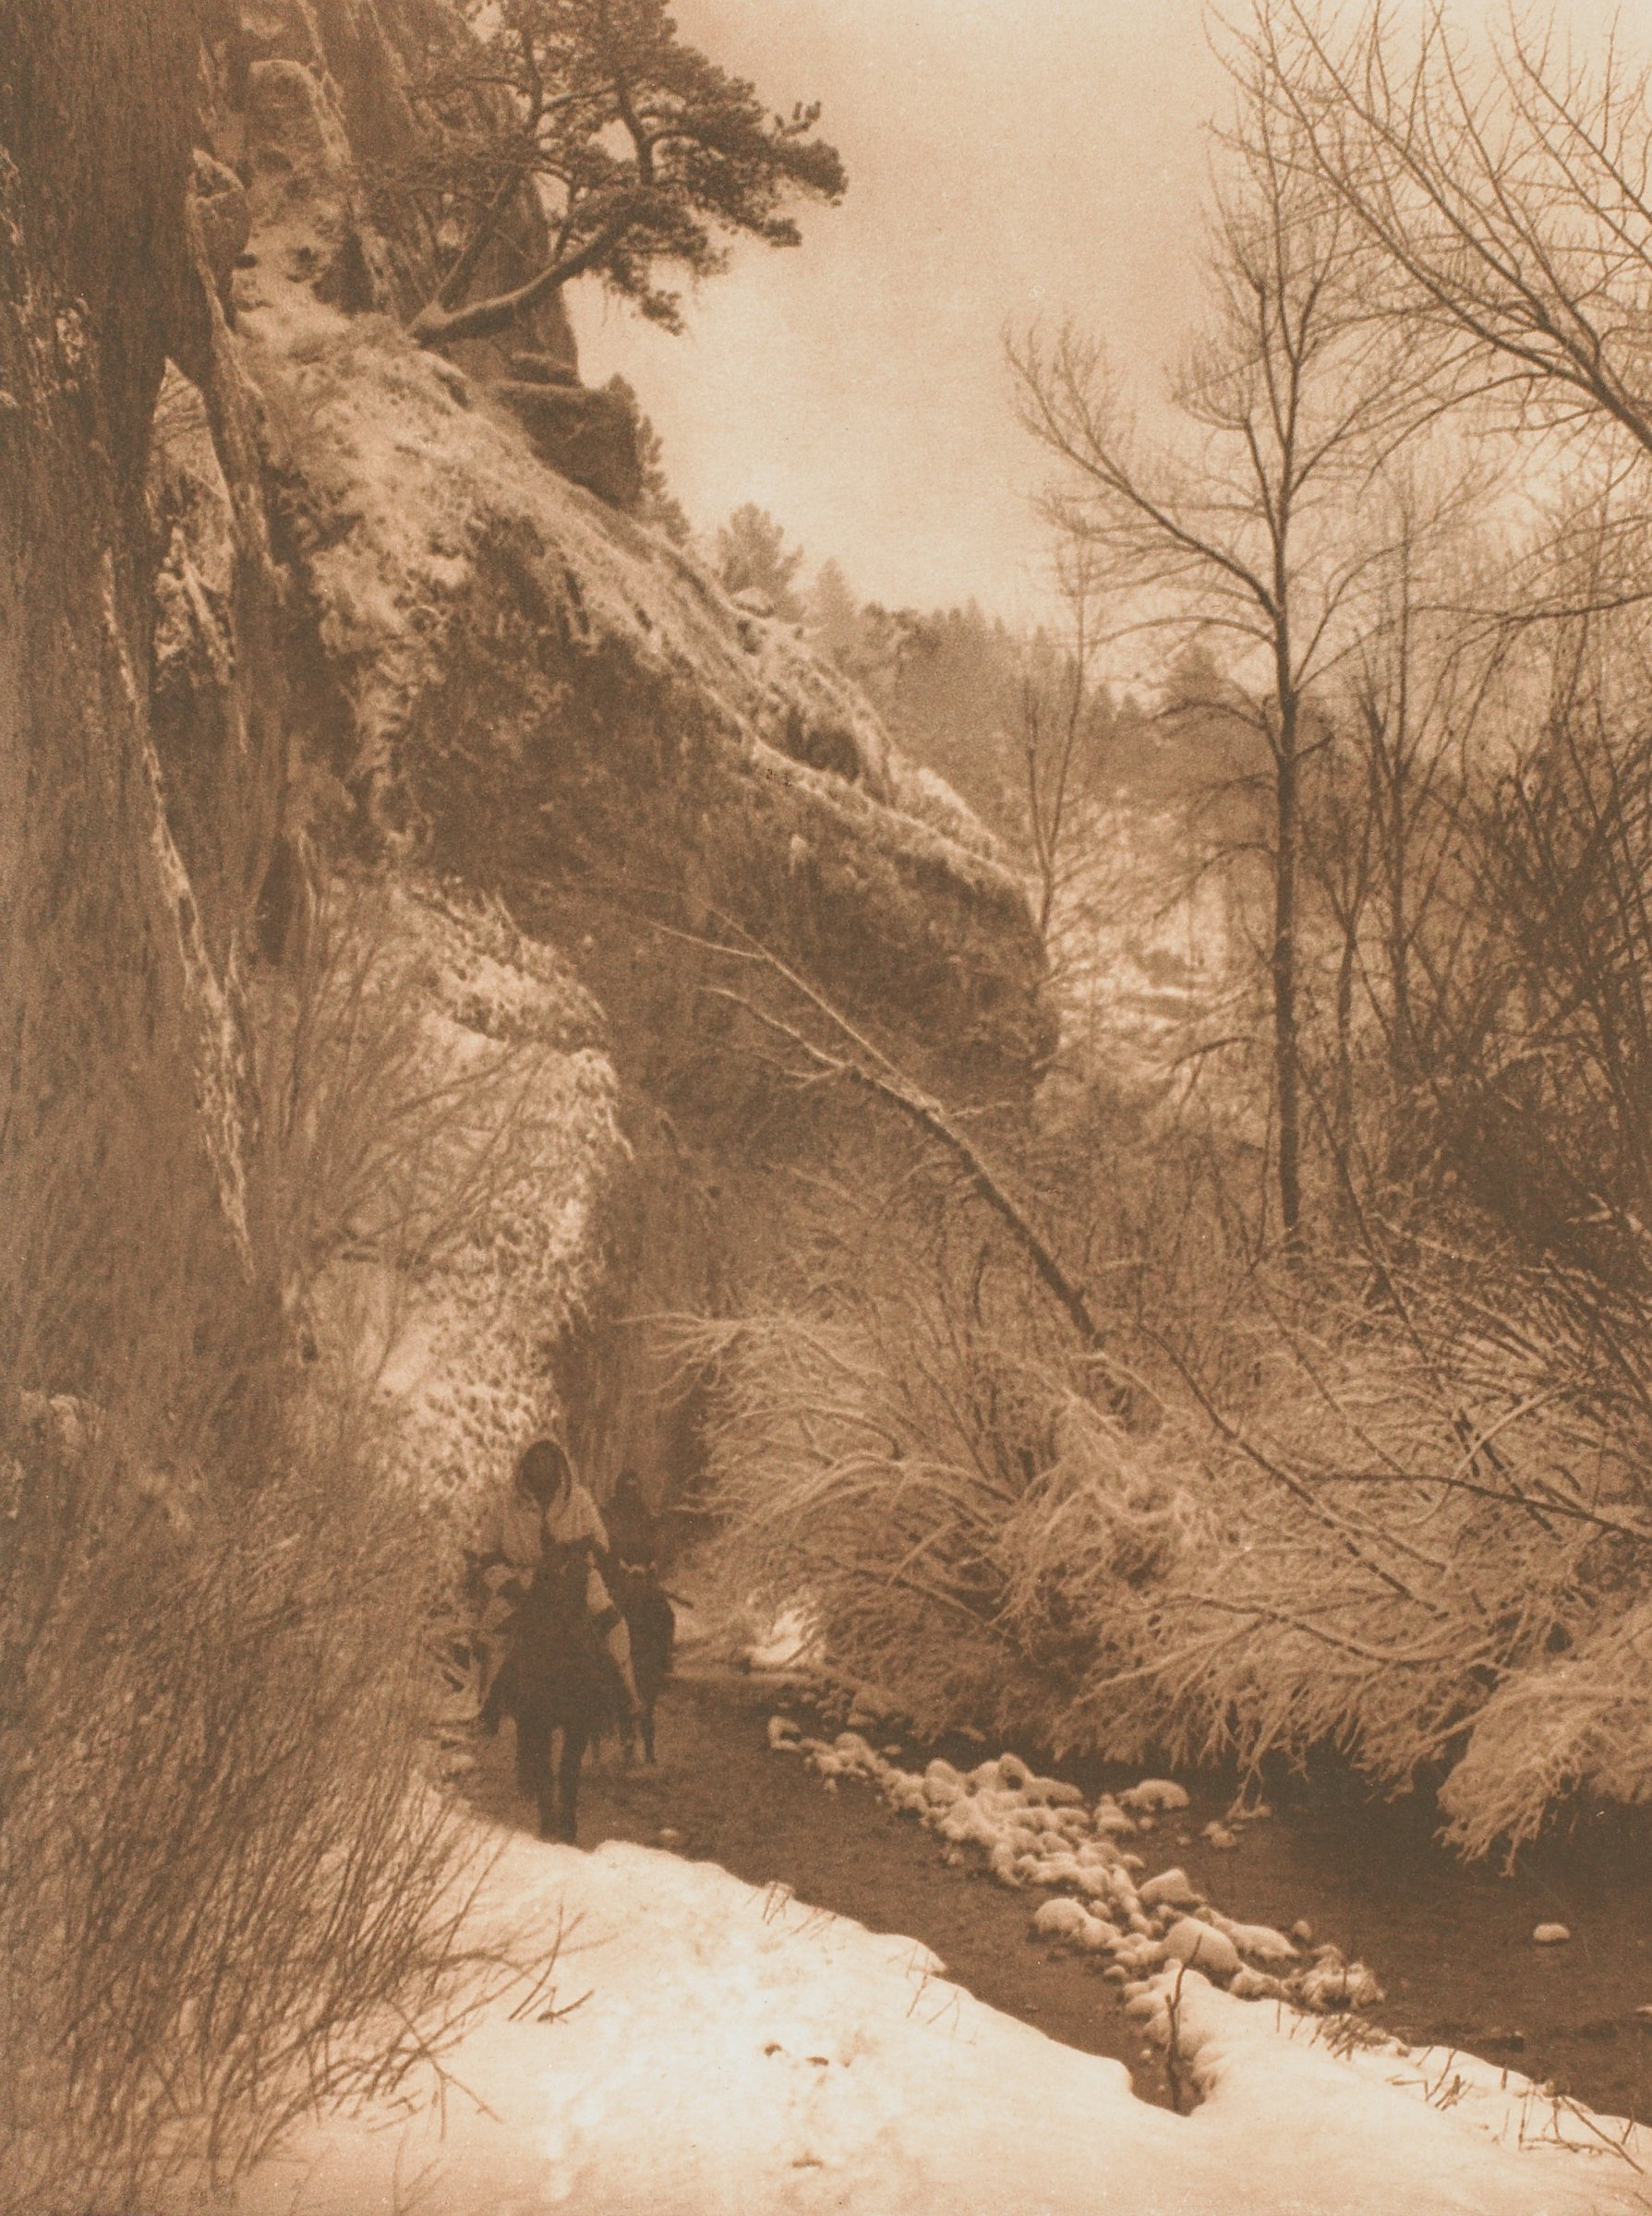 Passing The Cliff—Apsaroke, Edward Sheriff Curtis, John Andrew and Son, photogravure